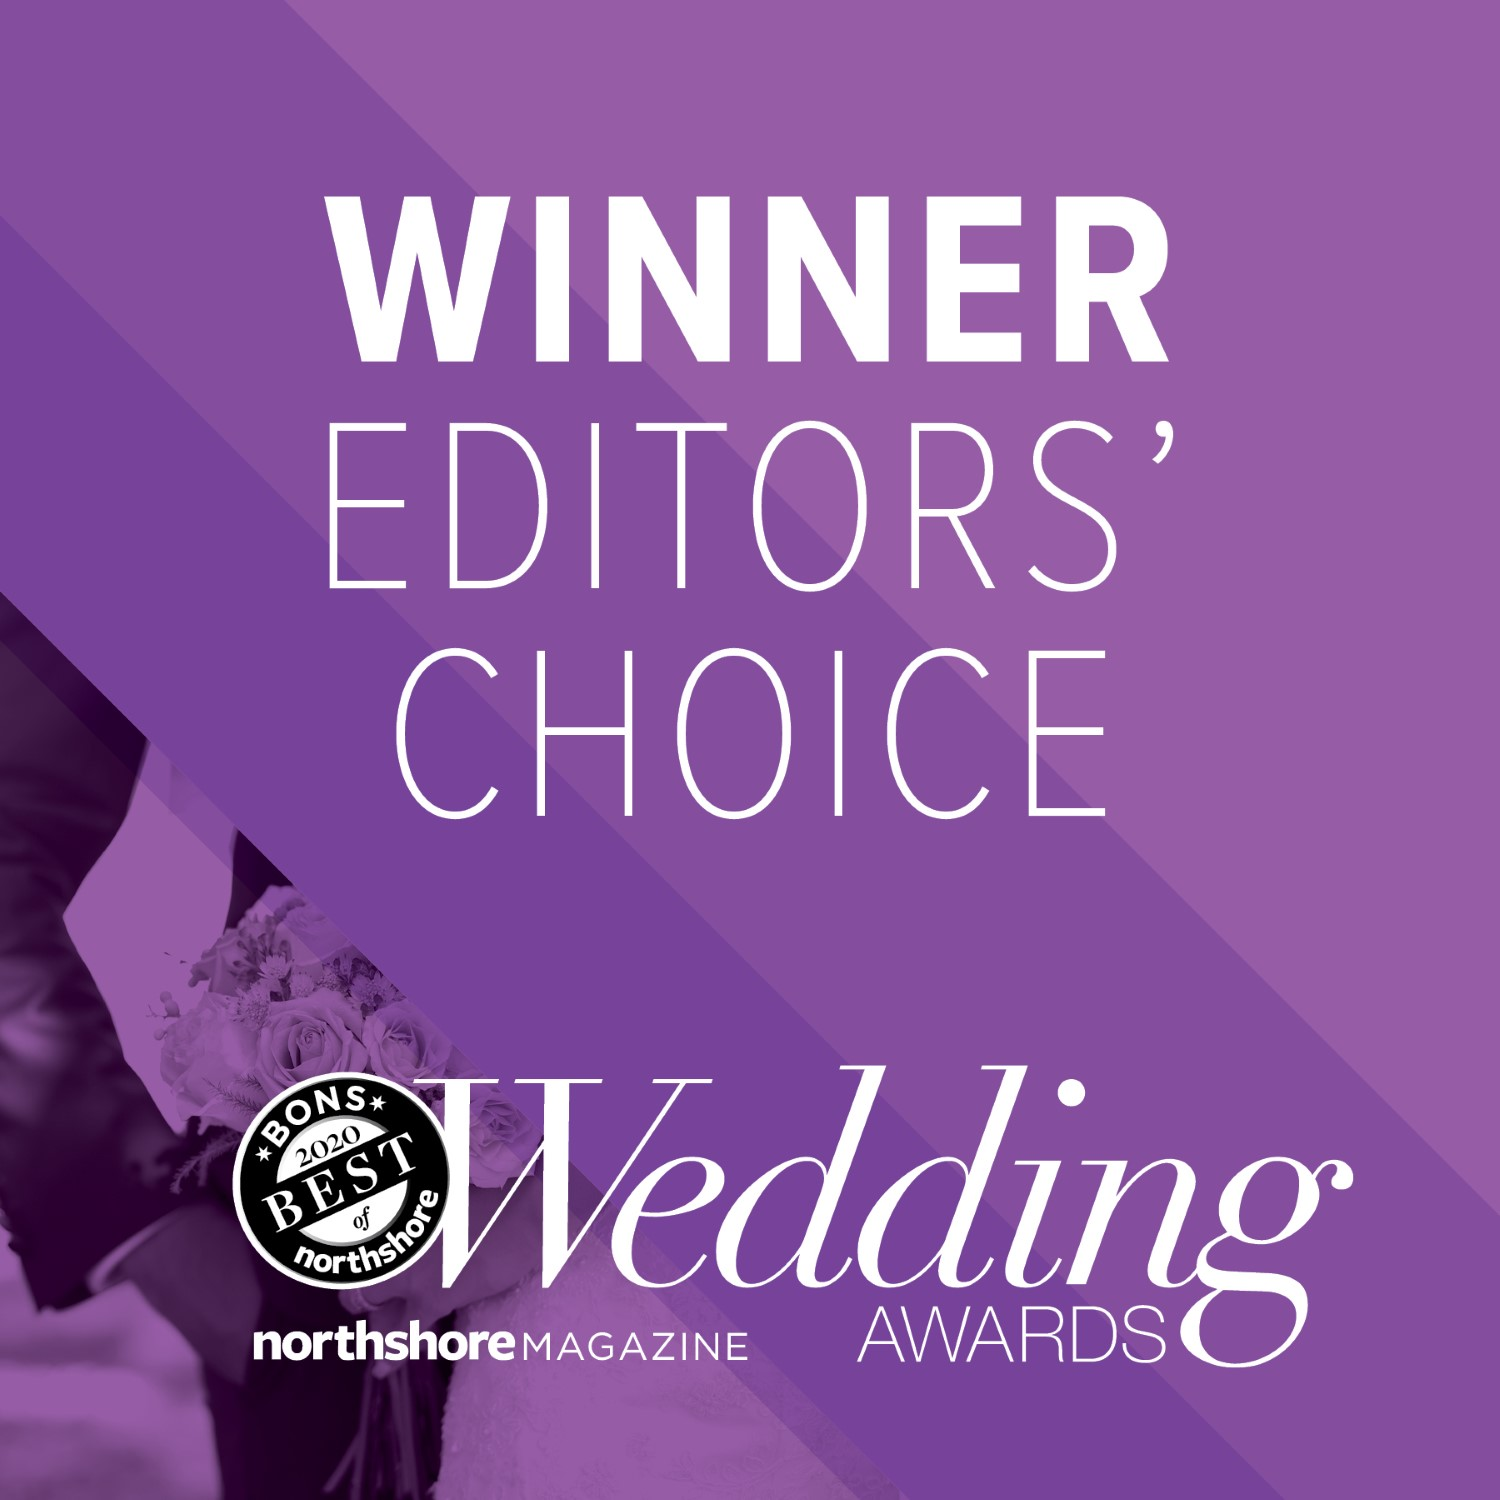 "WINNER OF THE 2016 BEST OF NORTH SHORE ""WEDDING AWARD"" FOR DAY SPA!"